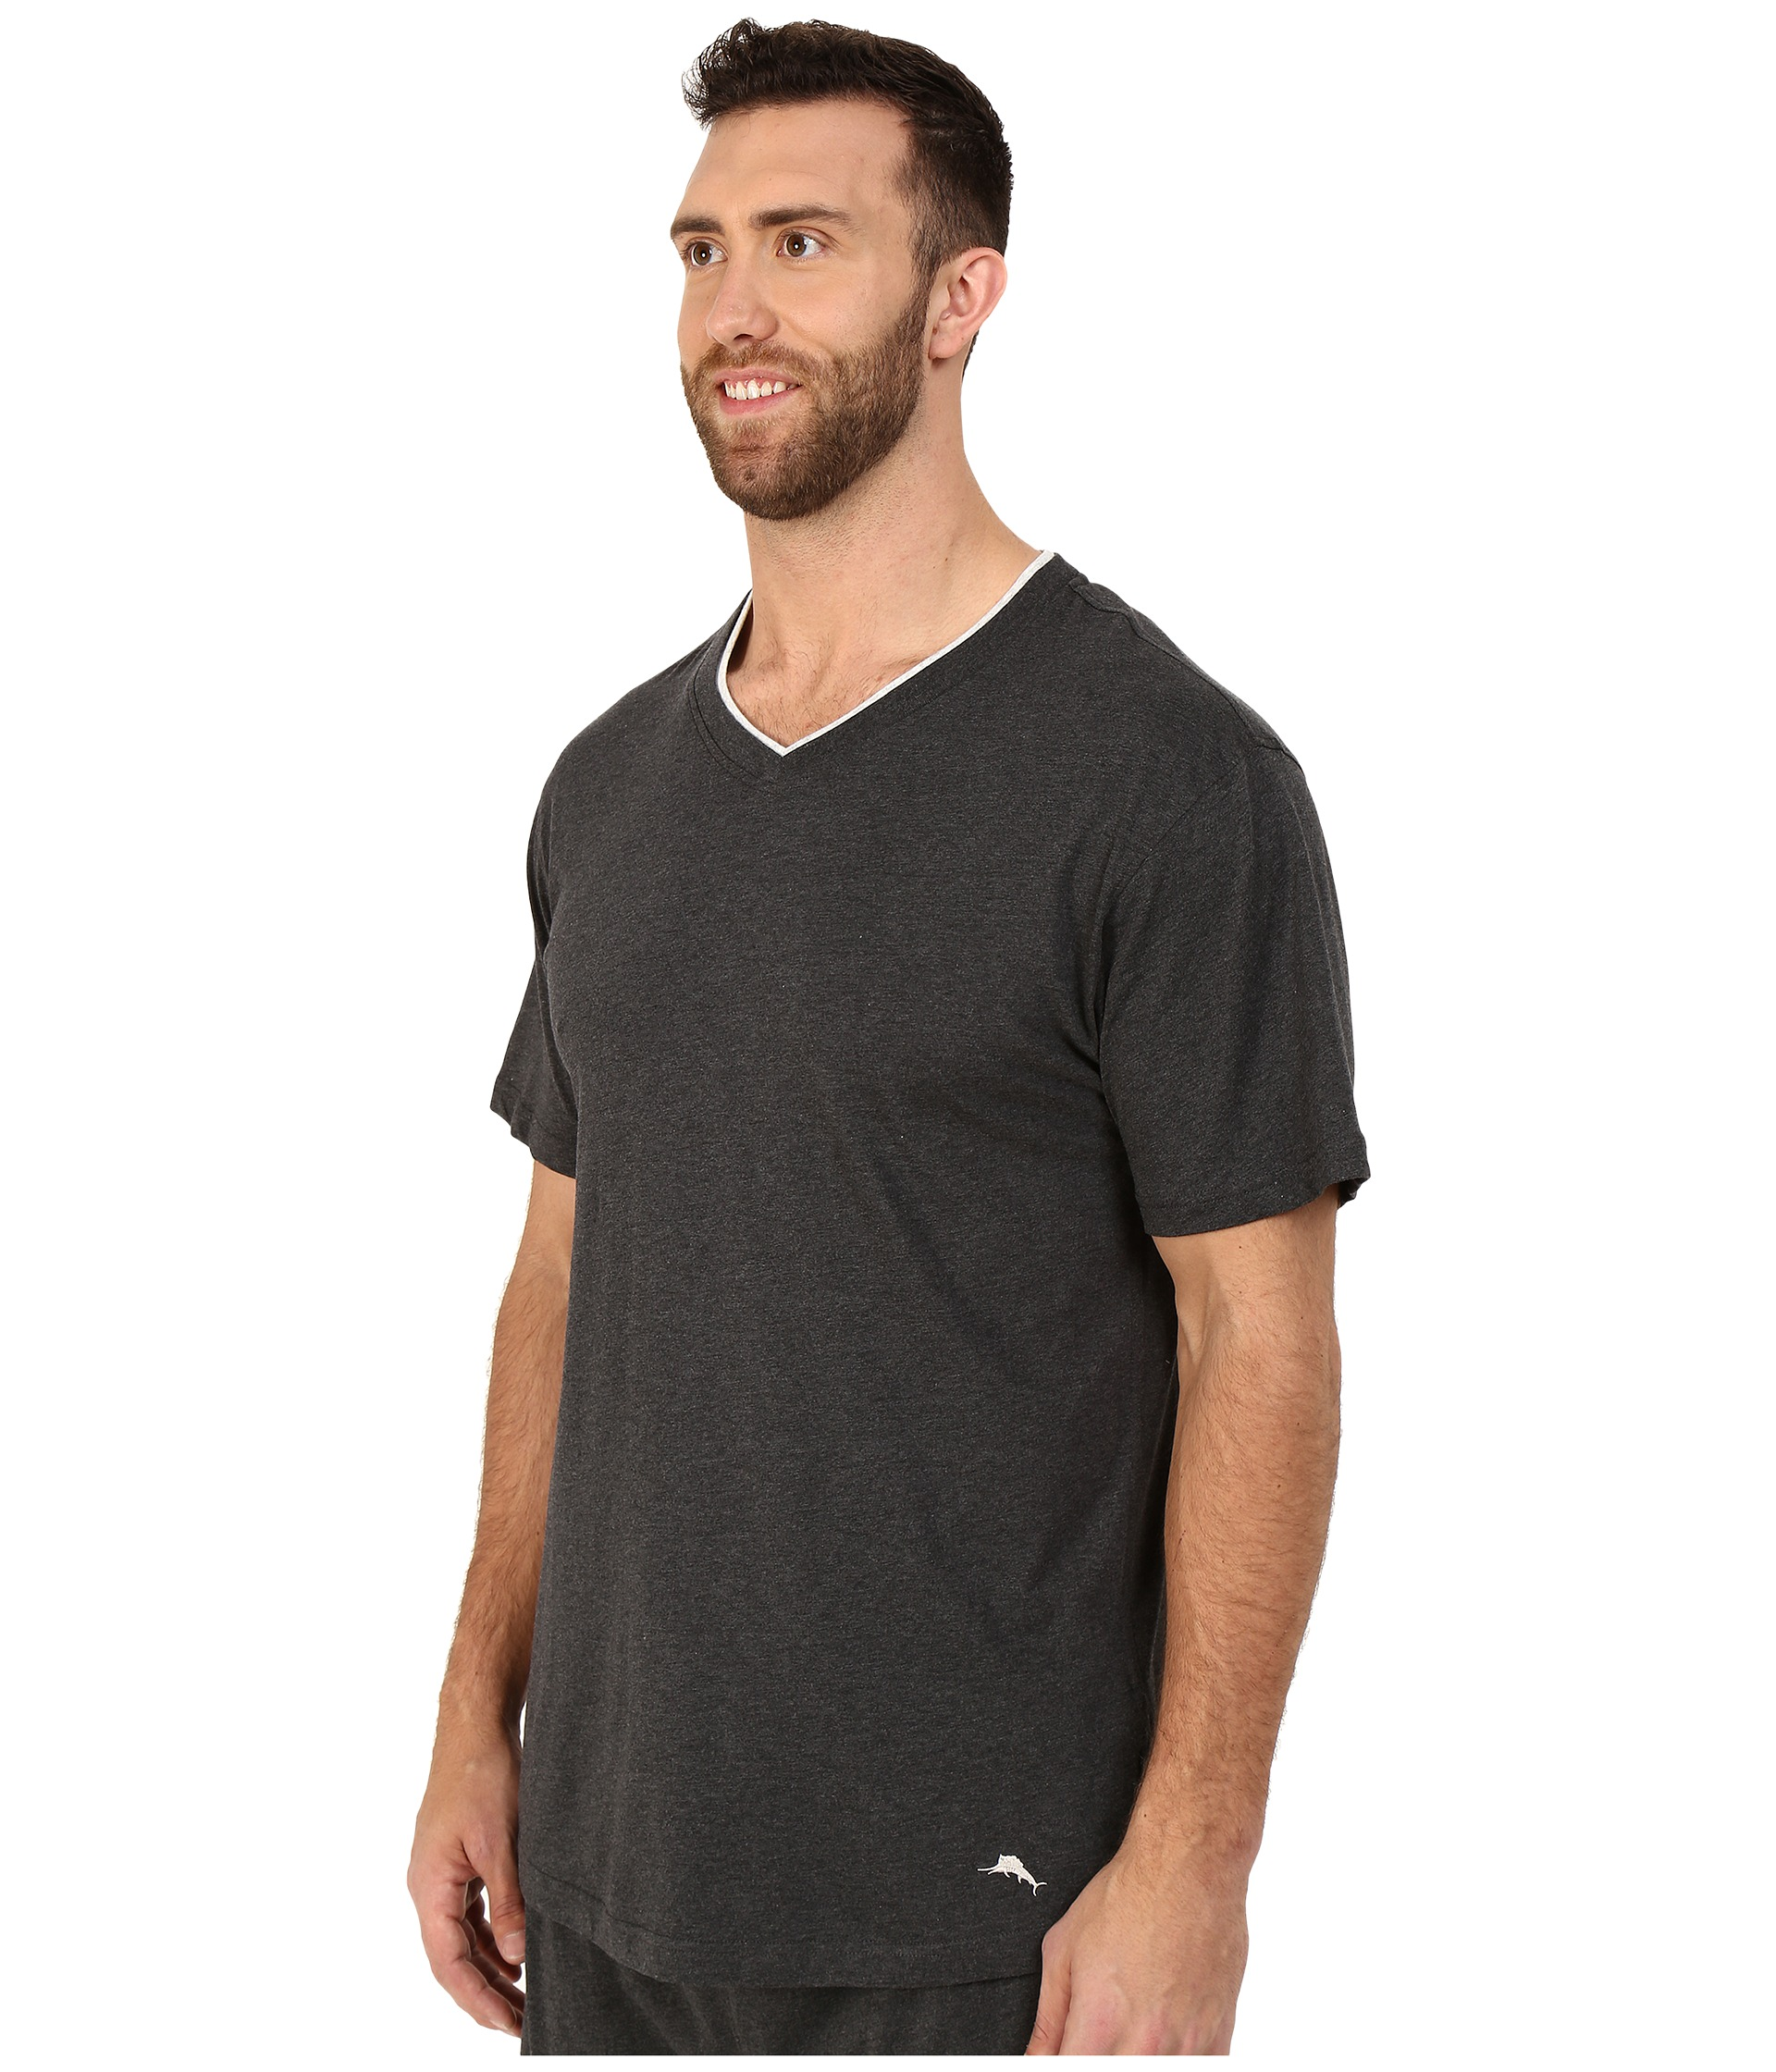 Tommy bahama big tall cotton modal v neck short sleeve t for Tall v neck t shirts